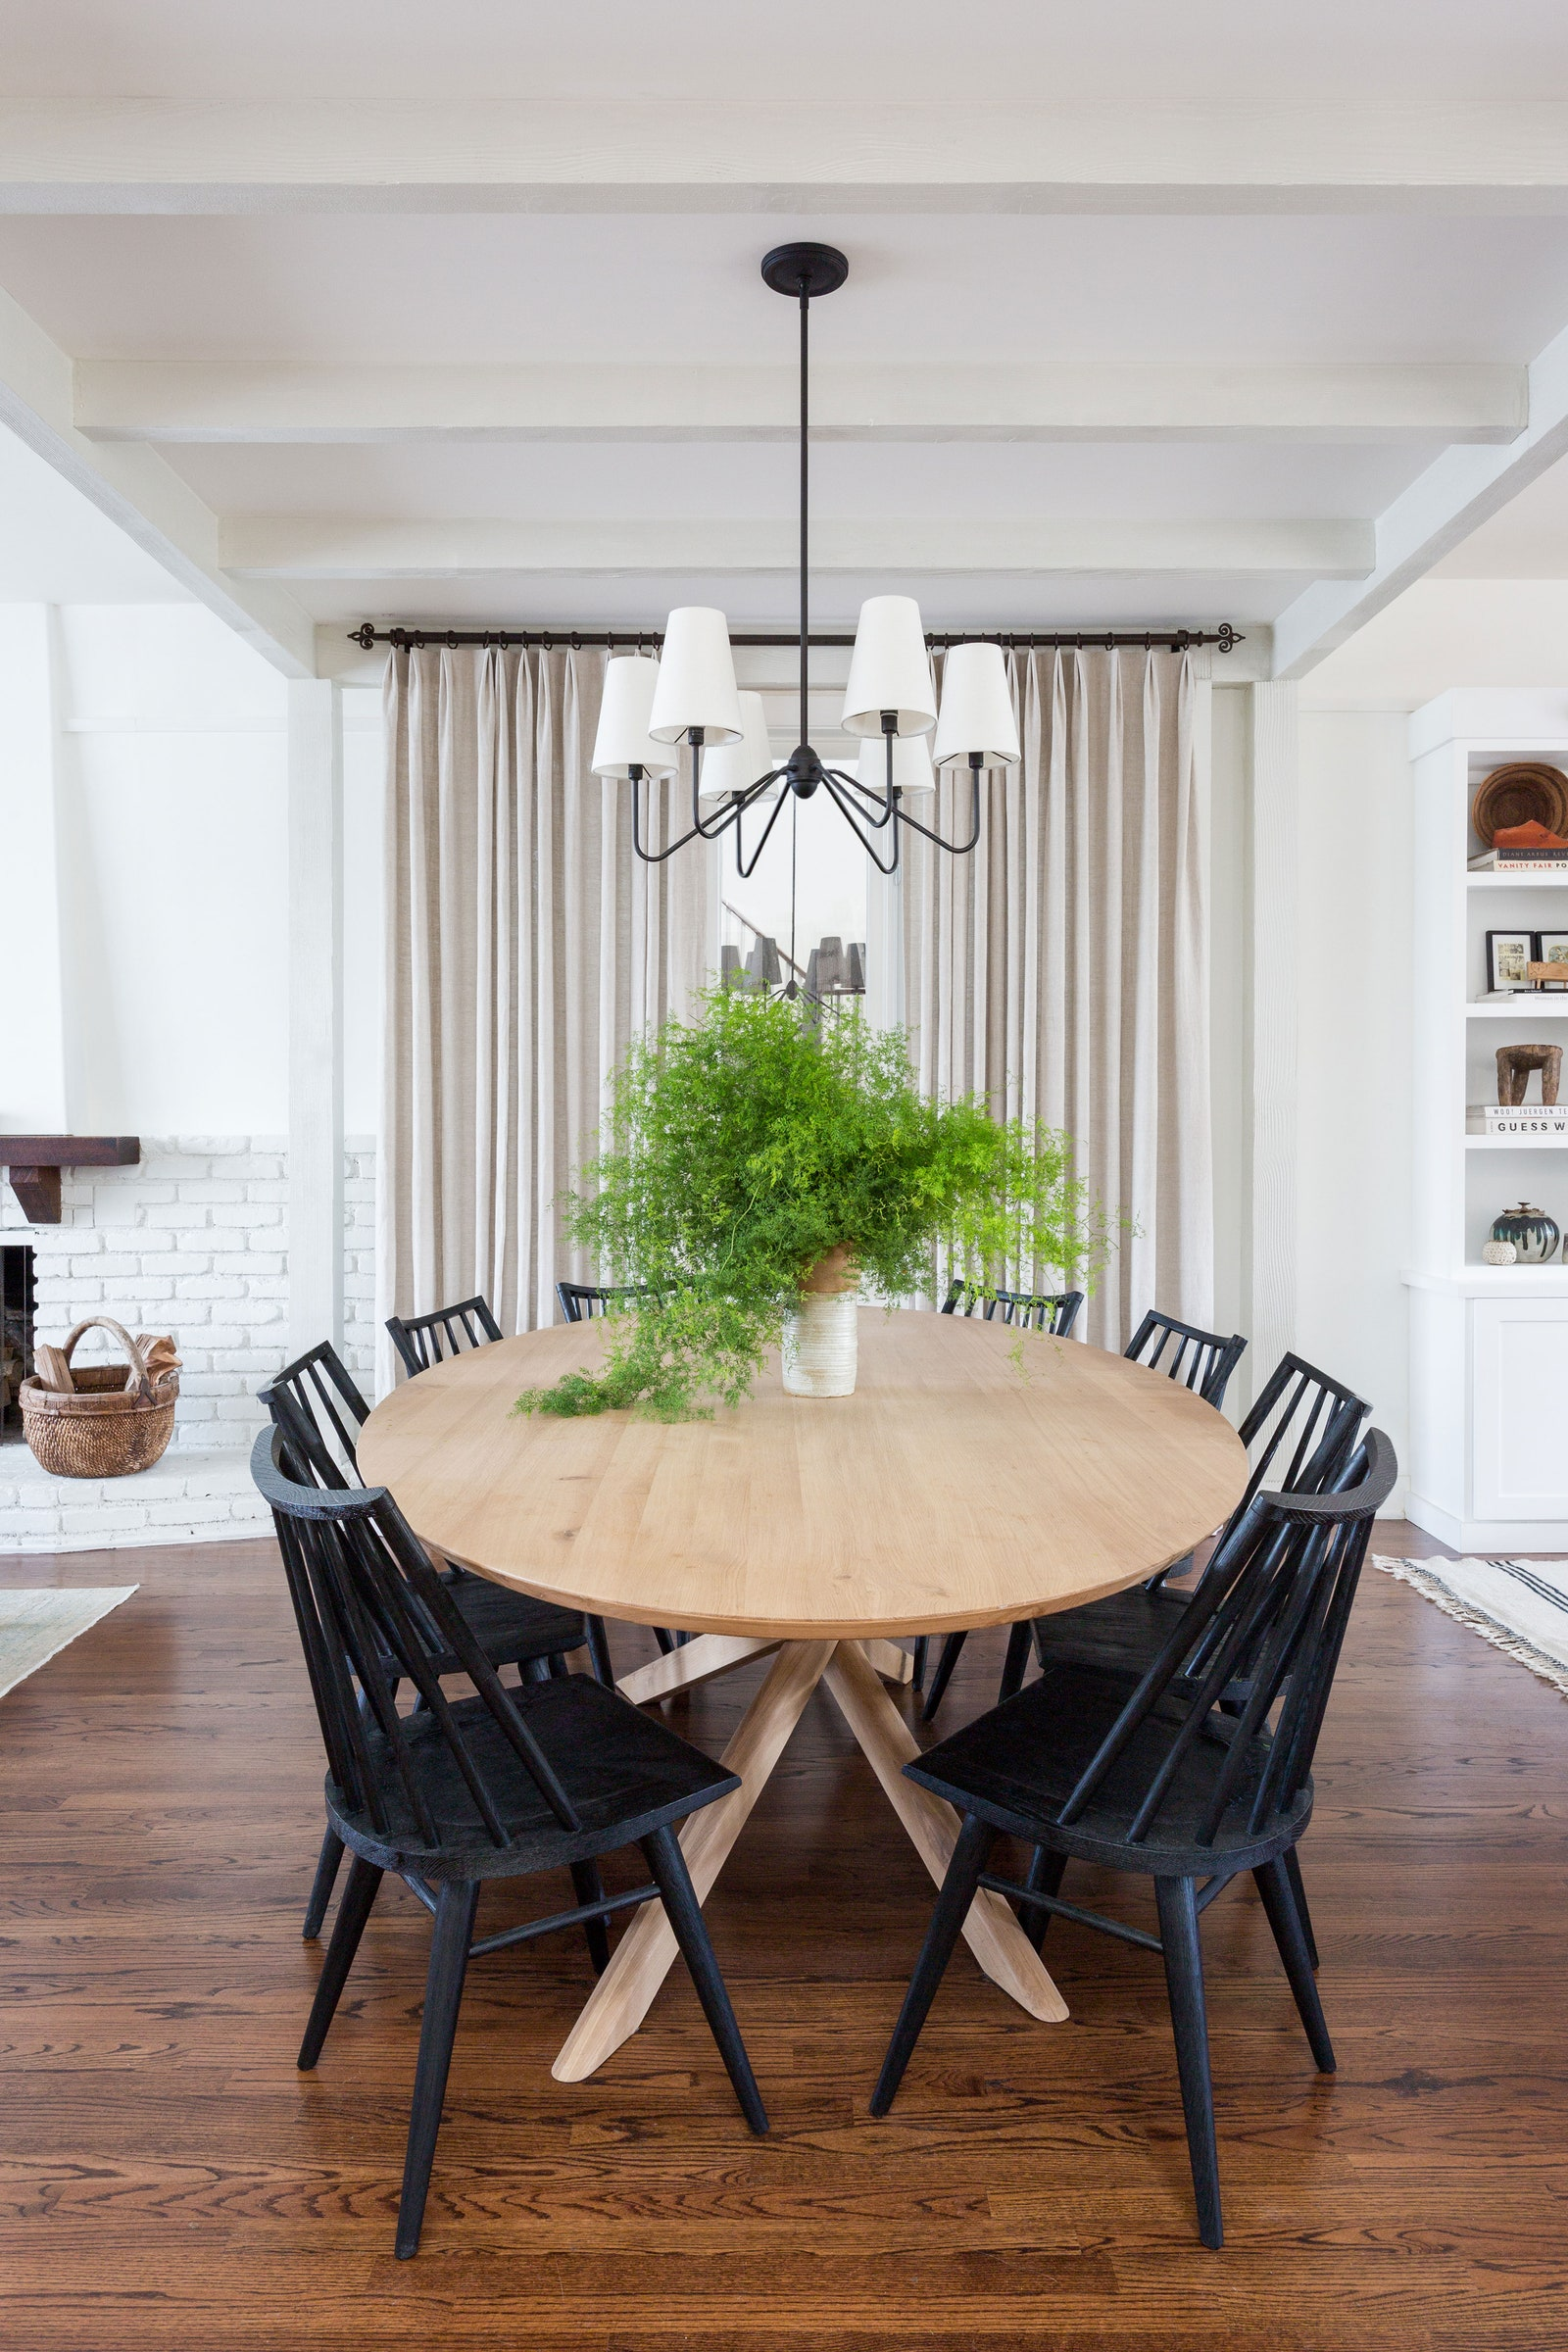 Image via Architectural Digest, Photography by Amy Bartlam, Design by Allie Boesch Designs